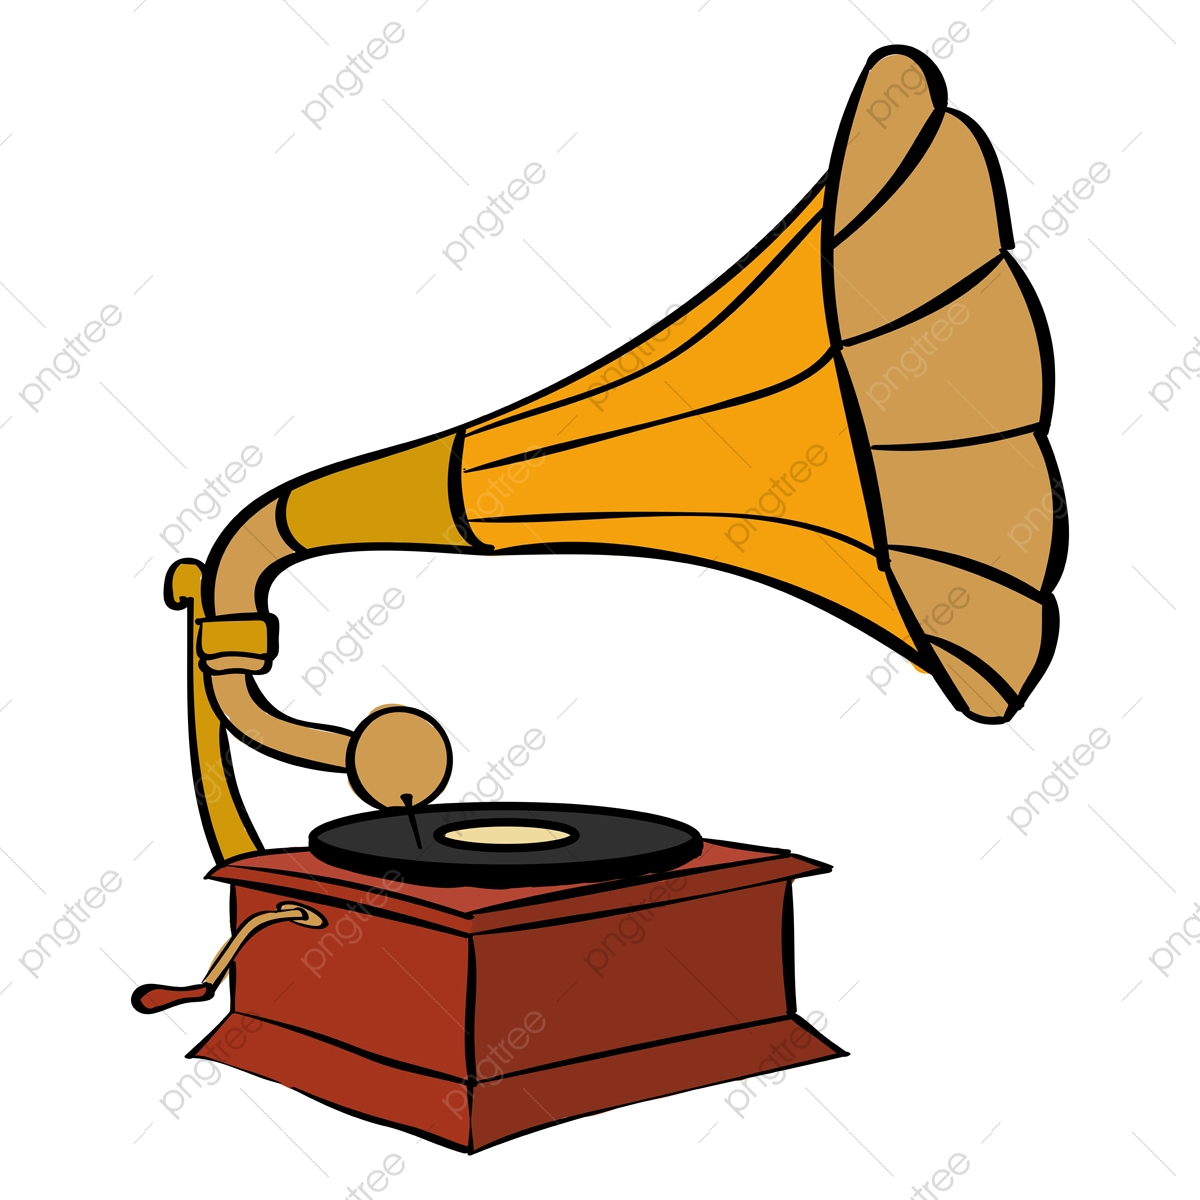 gramophone illustration vector on white background gramophone vector illustration png and vector with transparent background for free download https pngtree com freepng gramophone illustration vector on white background 5283034 html